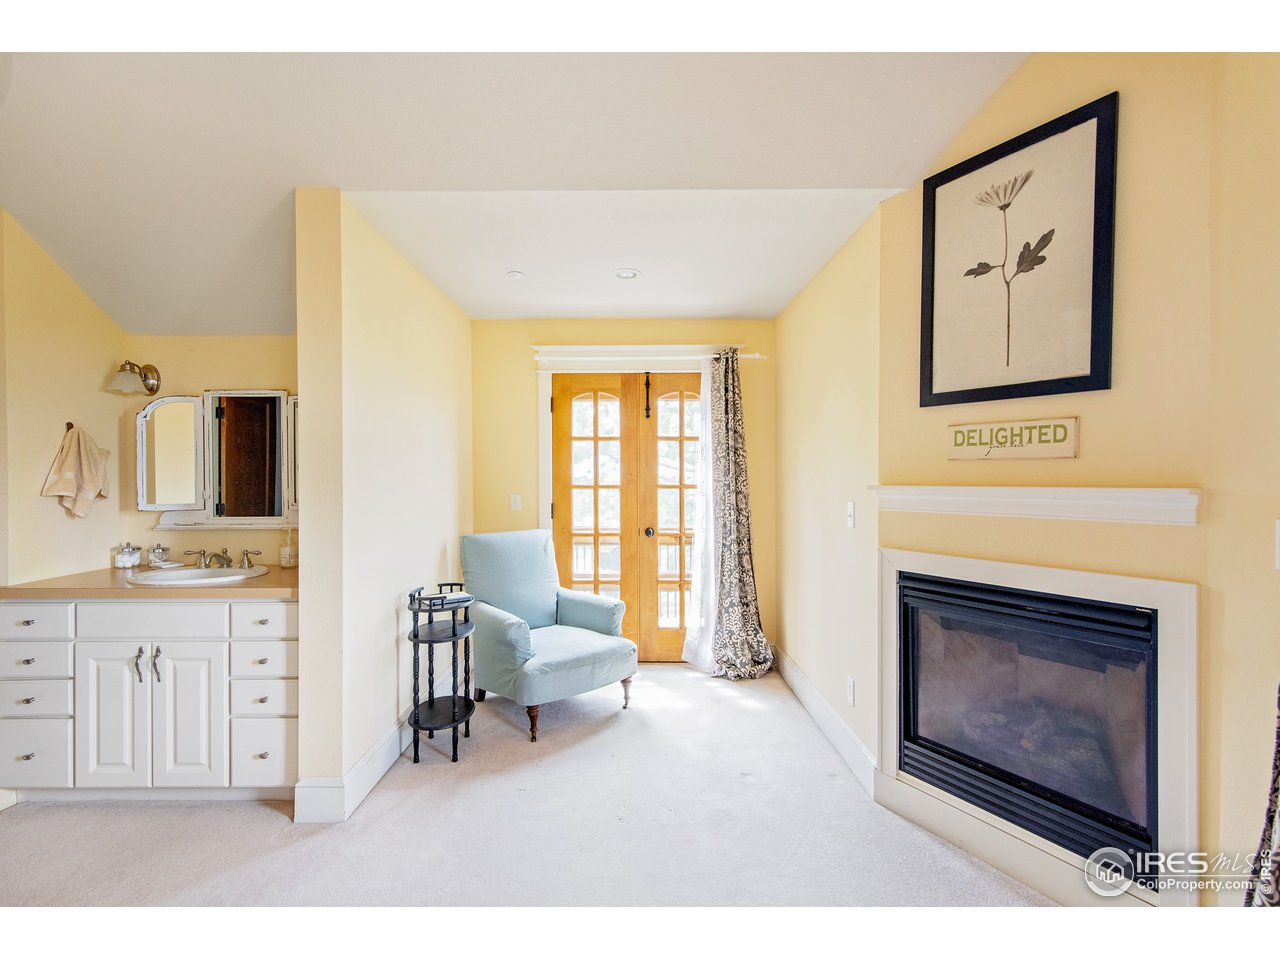 Upper Bedroom 3 with fireplace and private balcony